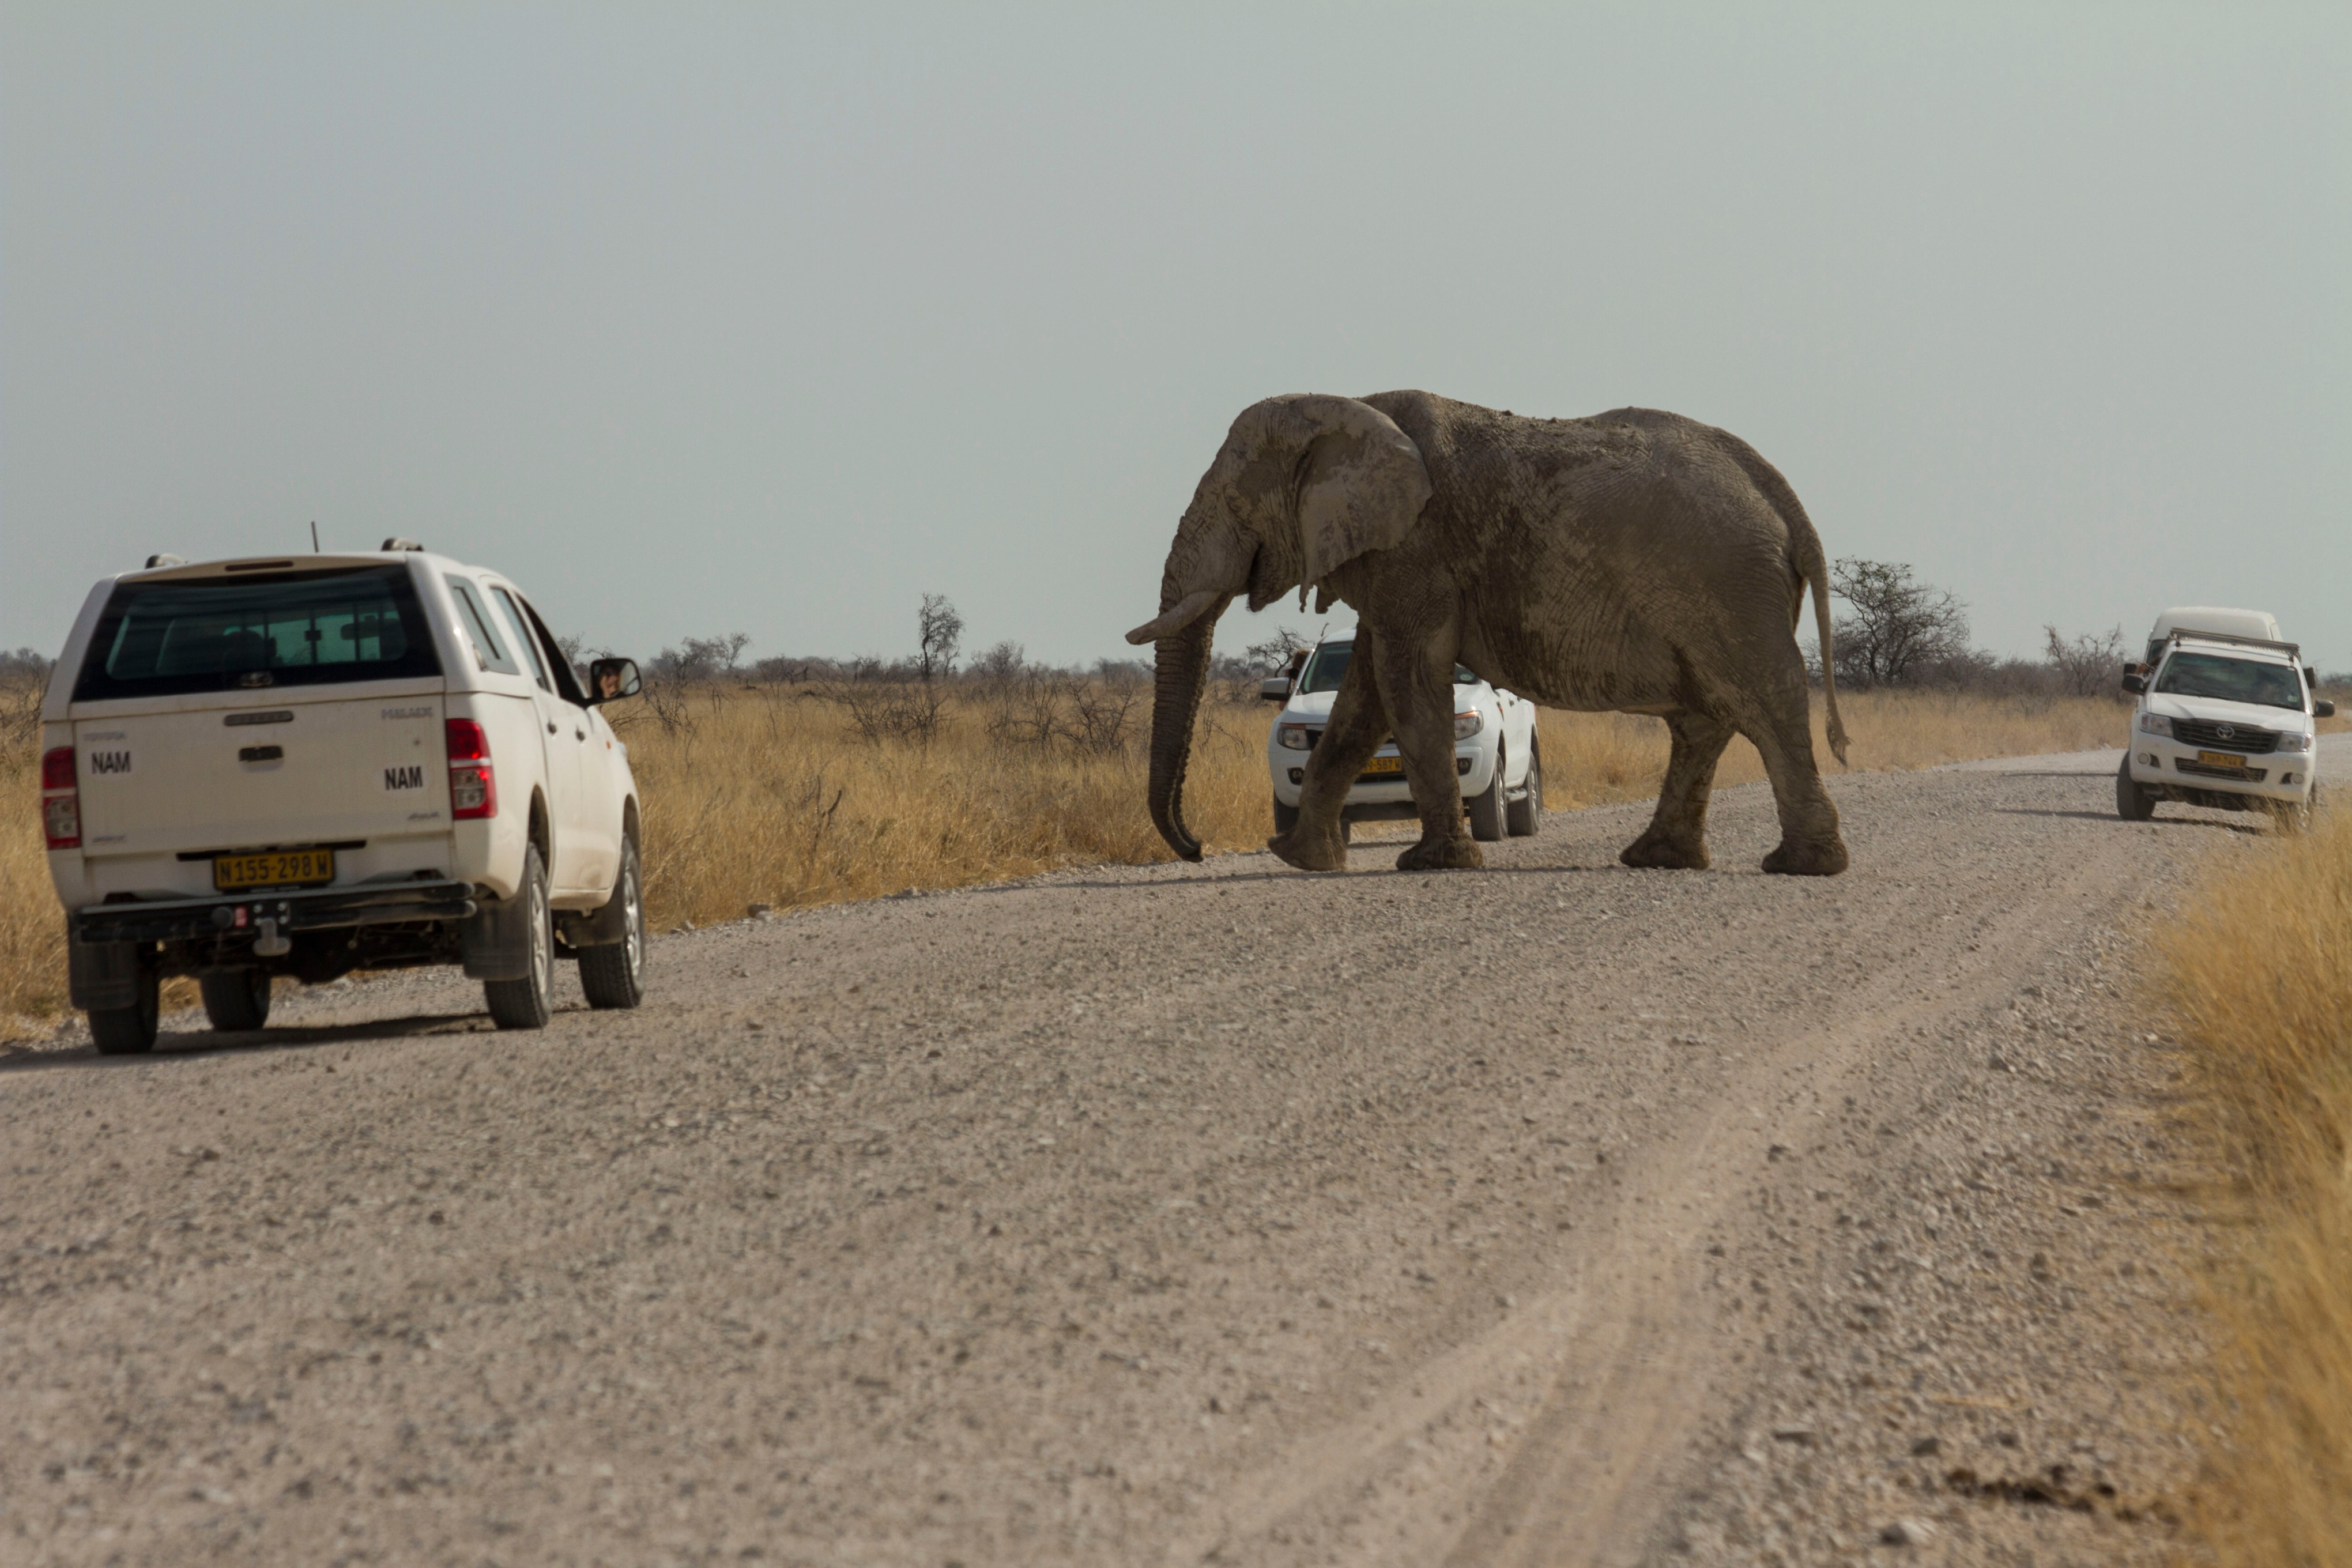 Why Does an Elephant Cross the Road?